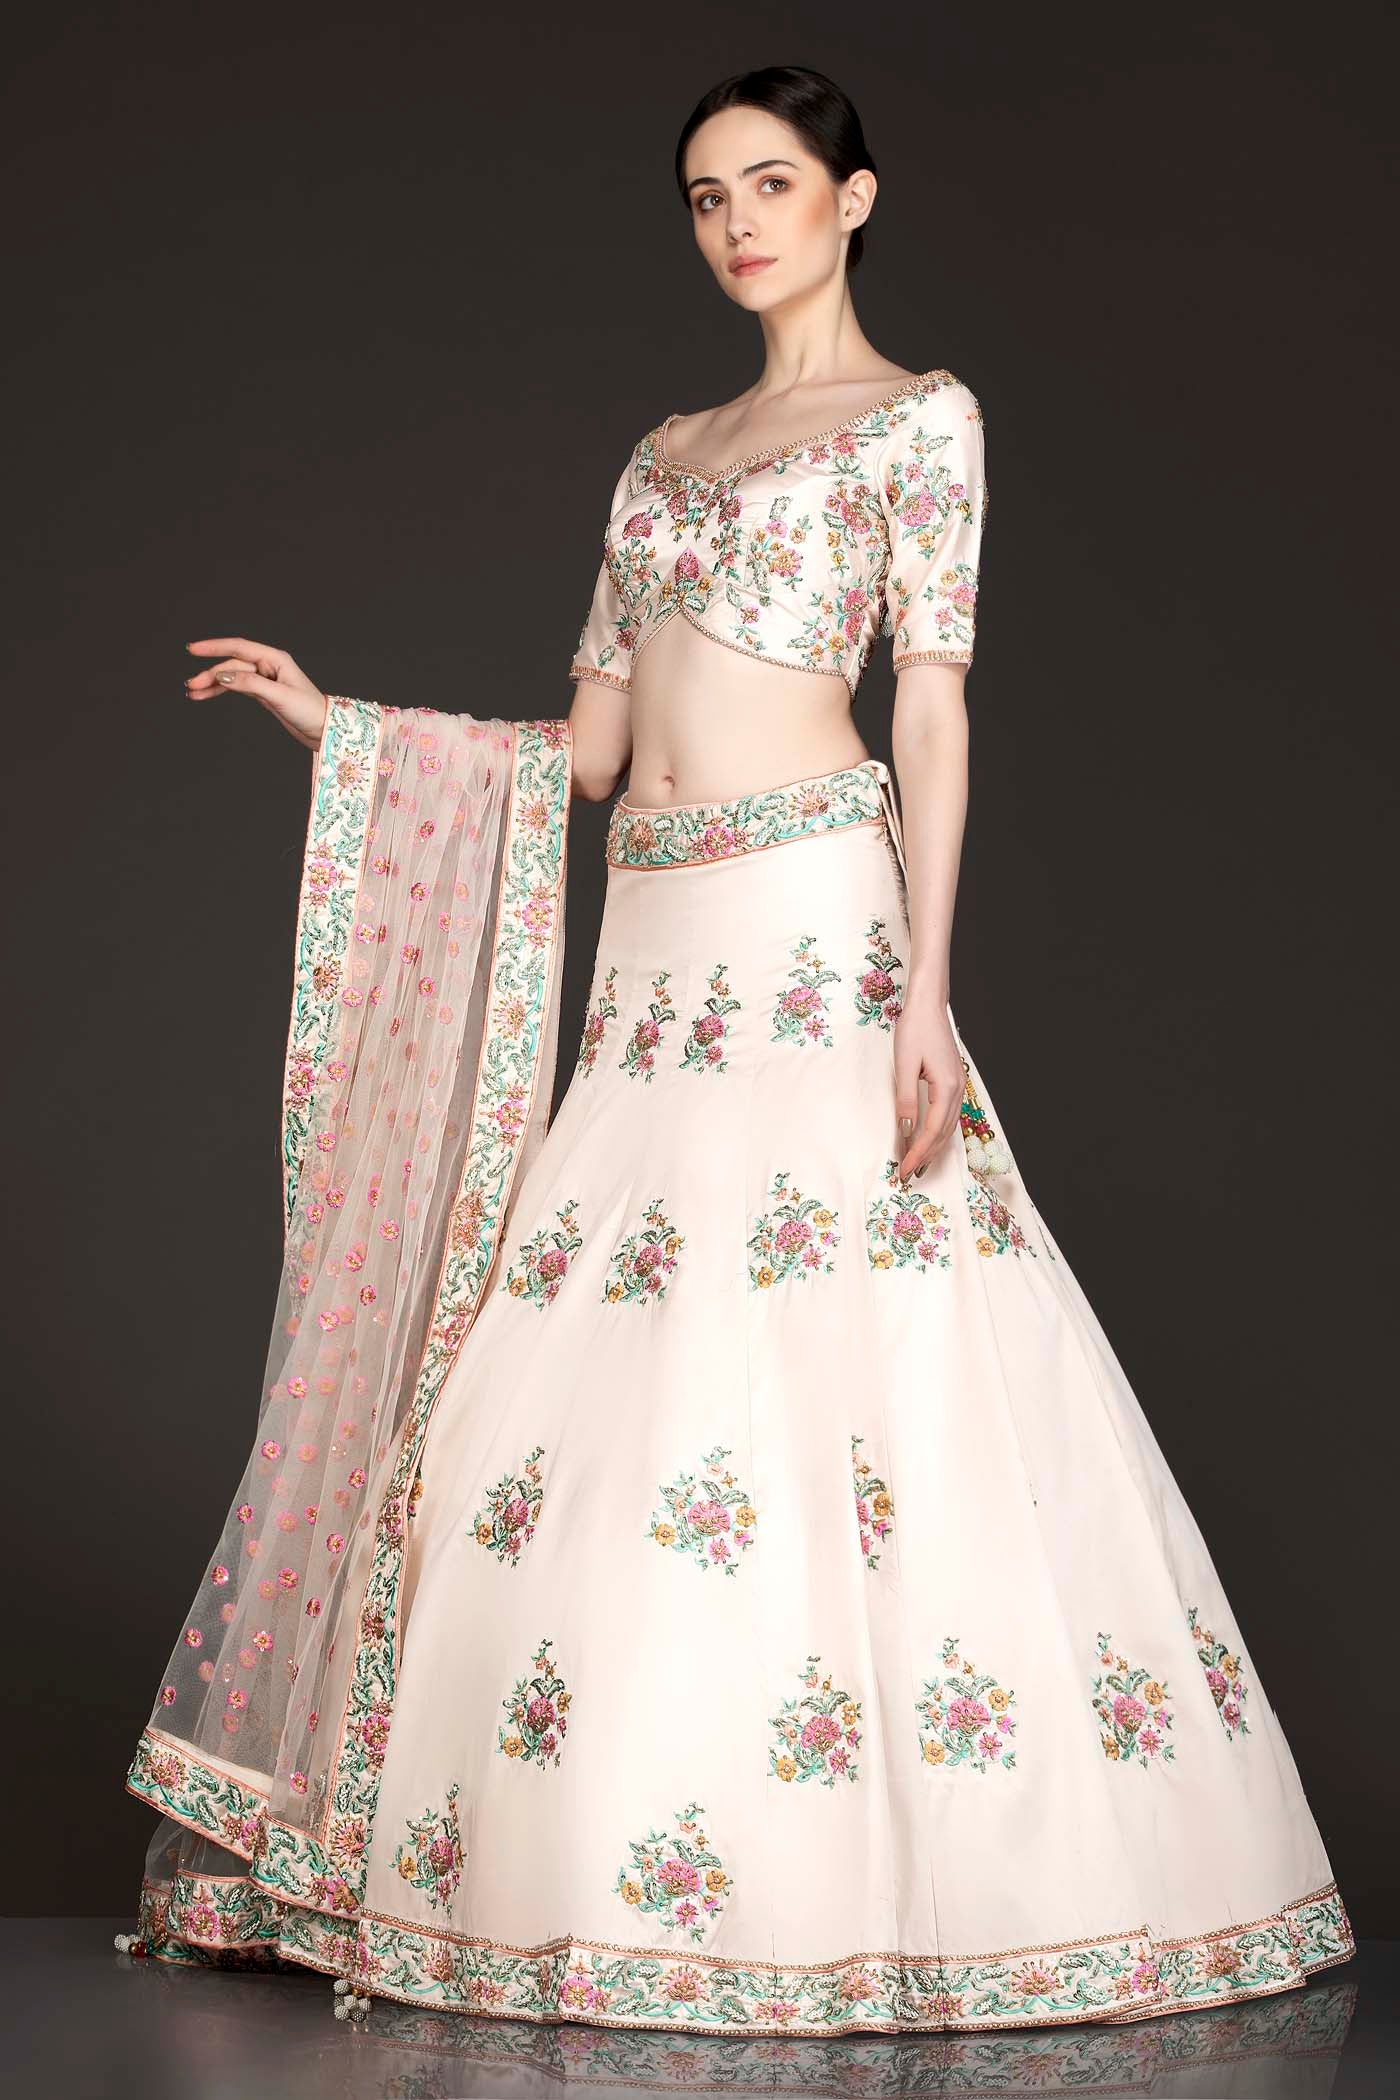 Gold Colour Silk Lehenga And Top With Peach Net Dupatta With Peach And Mint Thread Embroidery